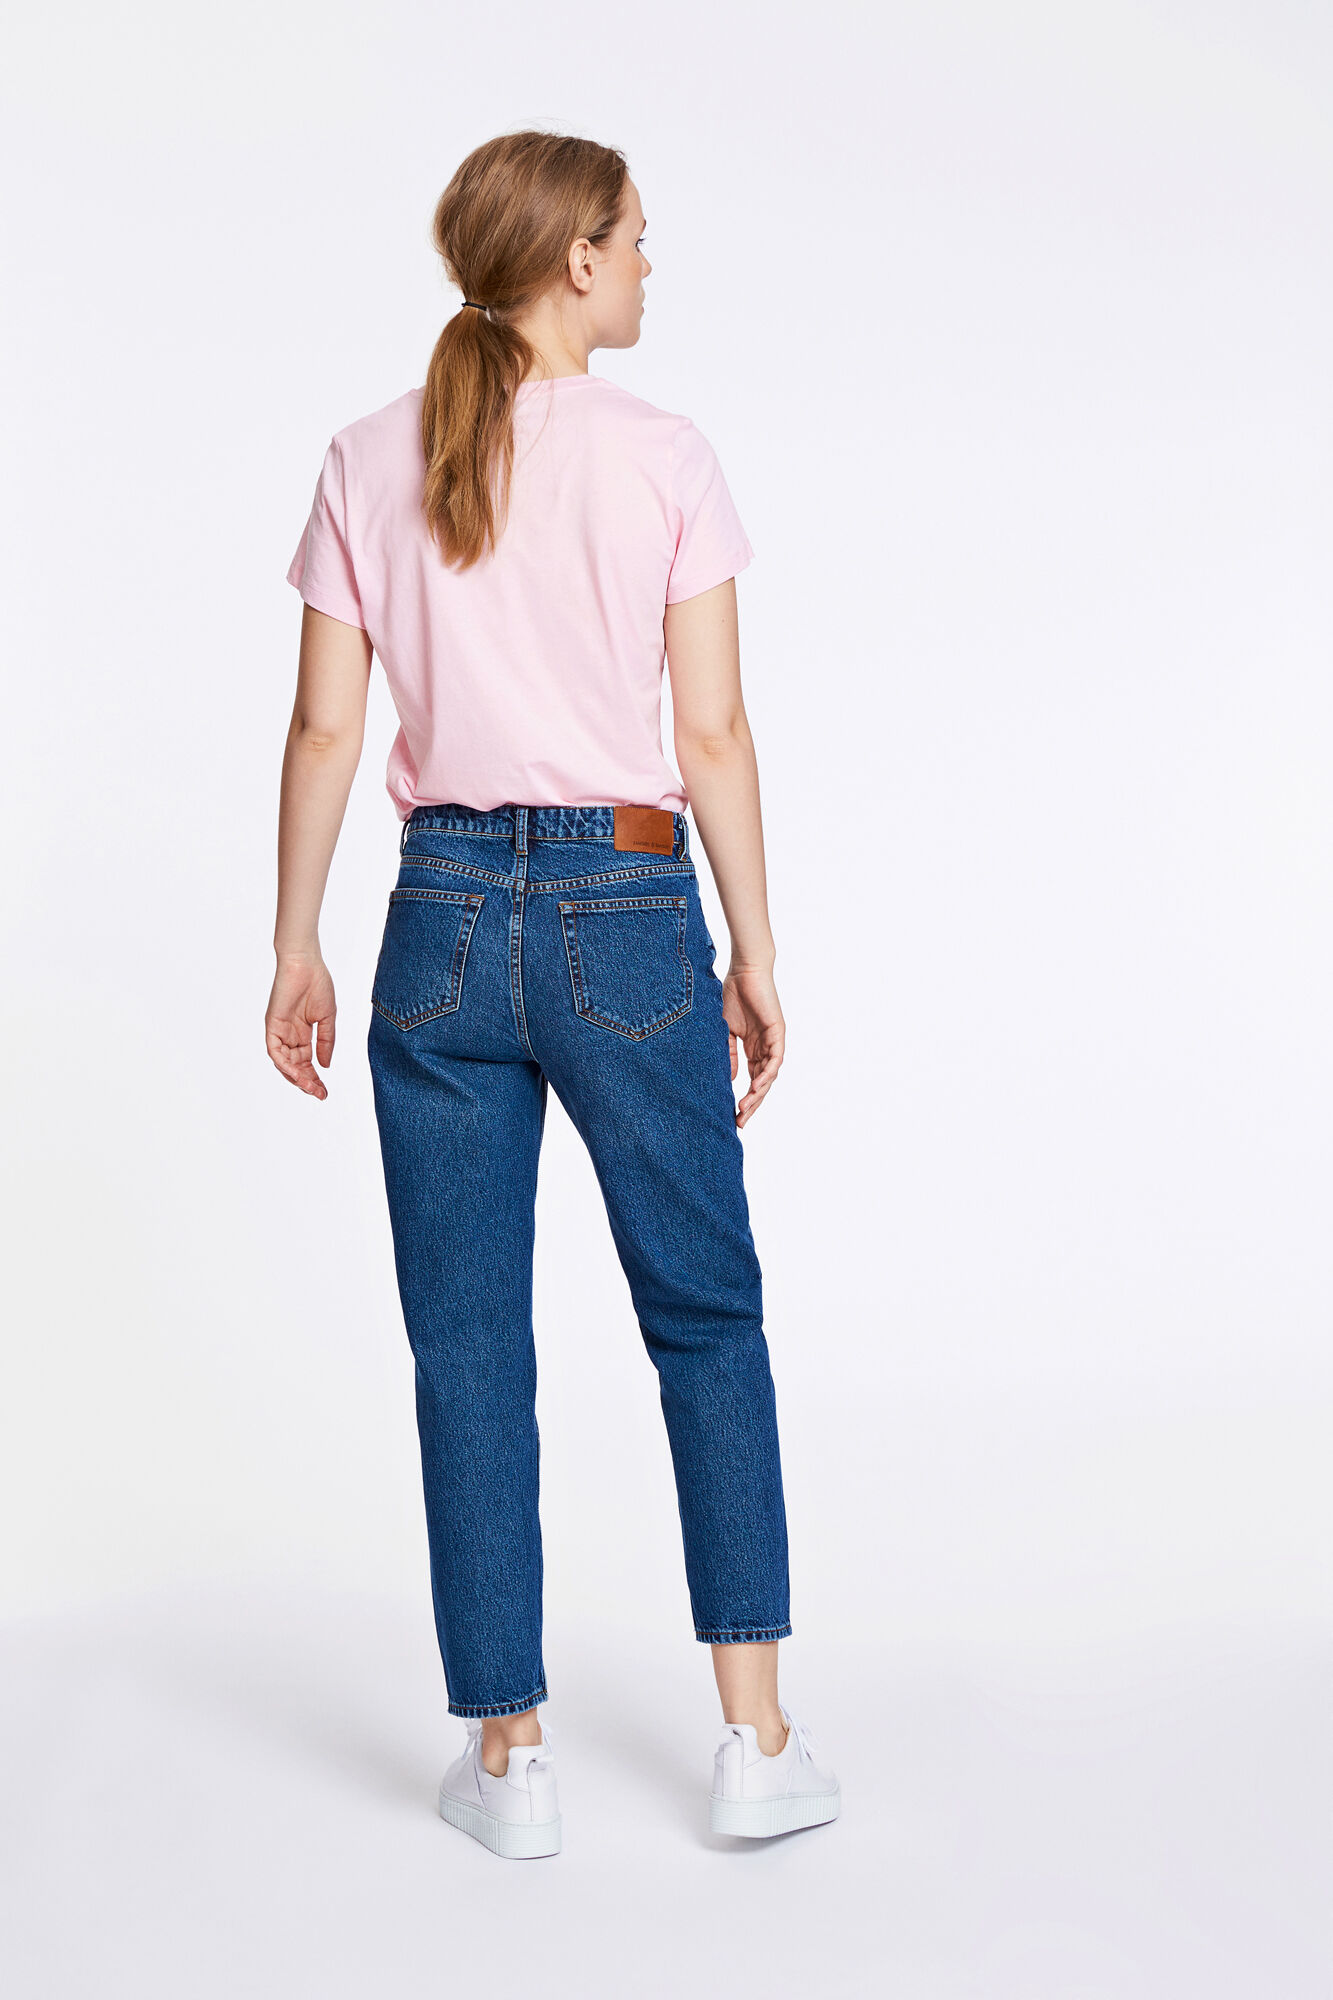 Solly ss 205, PINK JAPAN